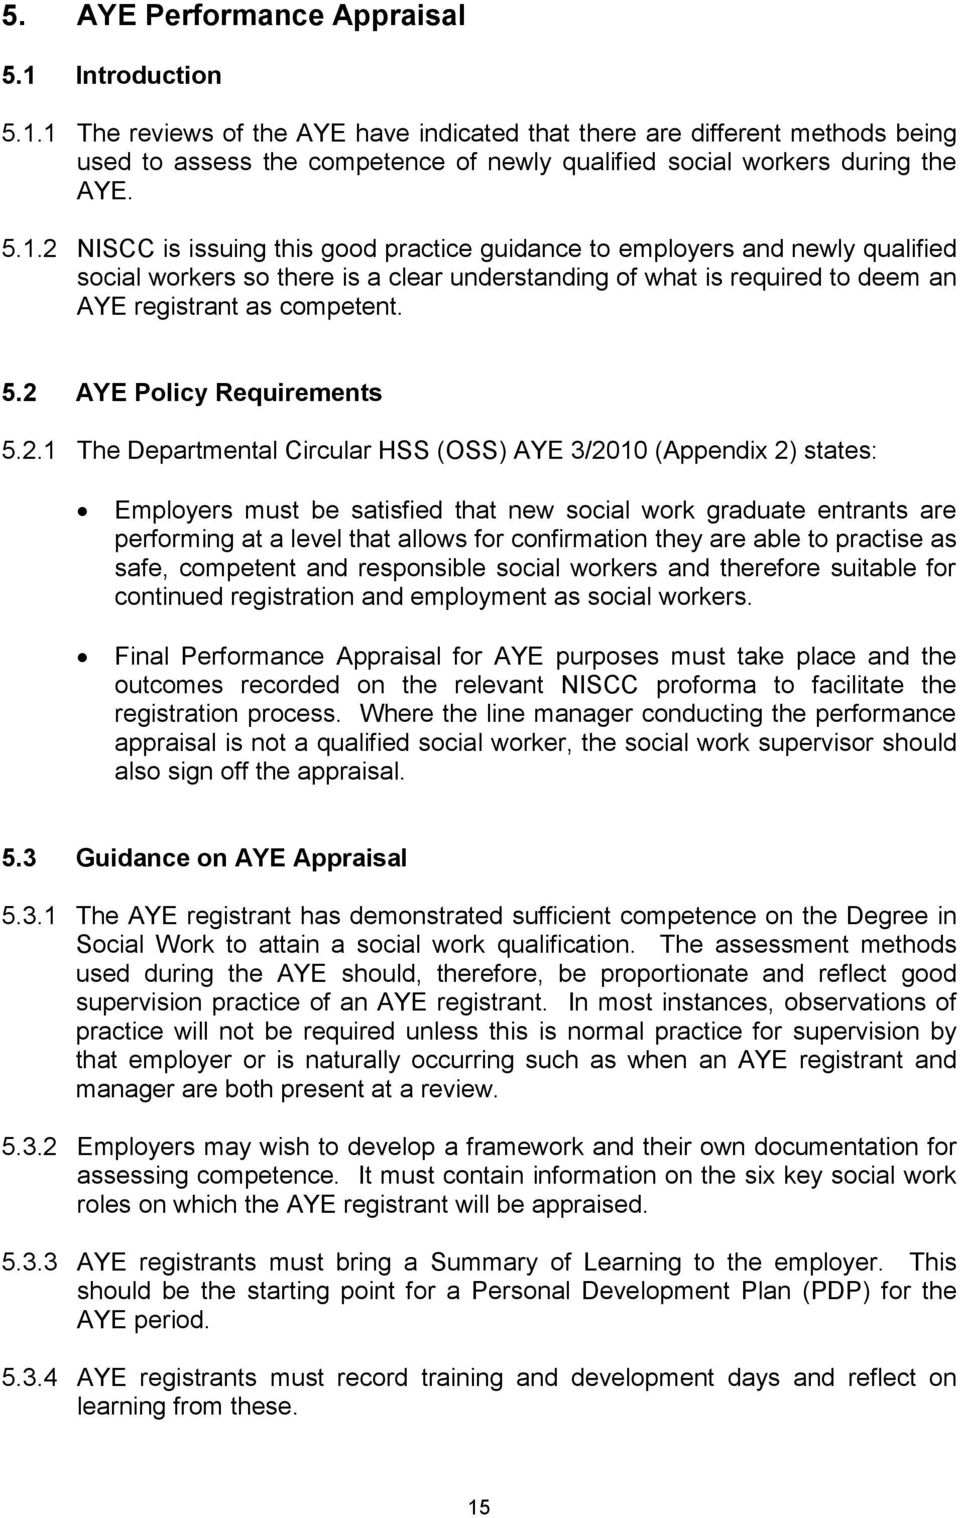 2 AYE Policy Requirements 5.2.1 The Departmental Circular HSS (OSS) AYE 3/2010 (Appendix 2) states: Employers must be satisfied that new social work graduate entrants are performing at a level that